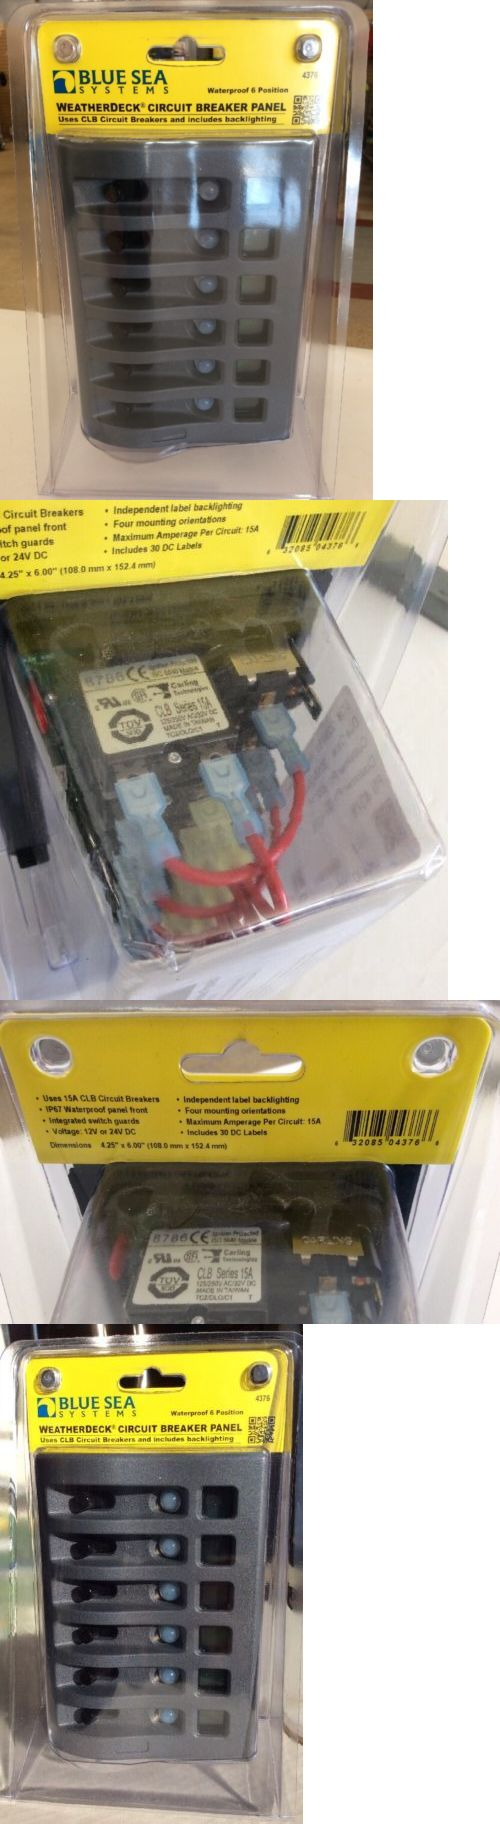 boat parts: New Blue Sea Electric Switch Panel Power Distribution 12V 6-Gang Waterproof 4376 -> BUY IT NOW ONLY: $119.95 on eBay!